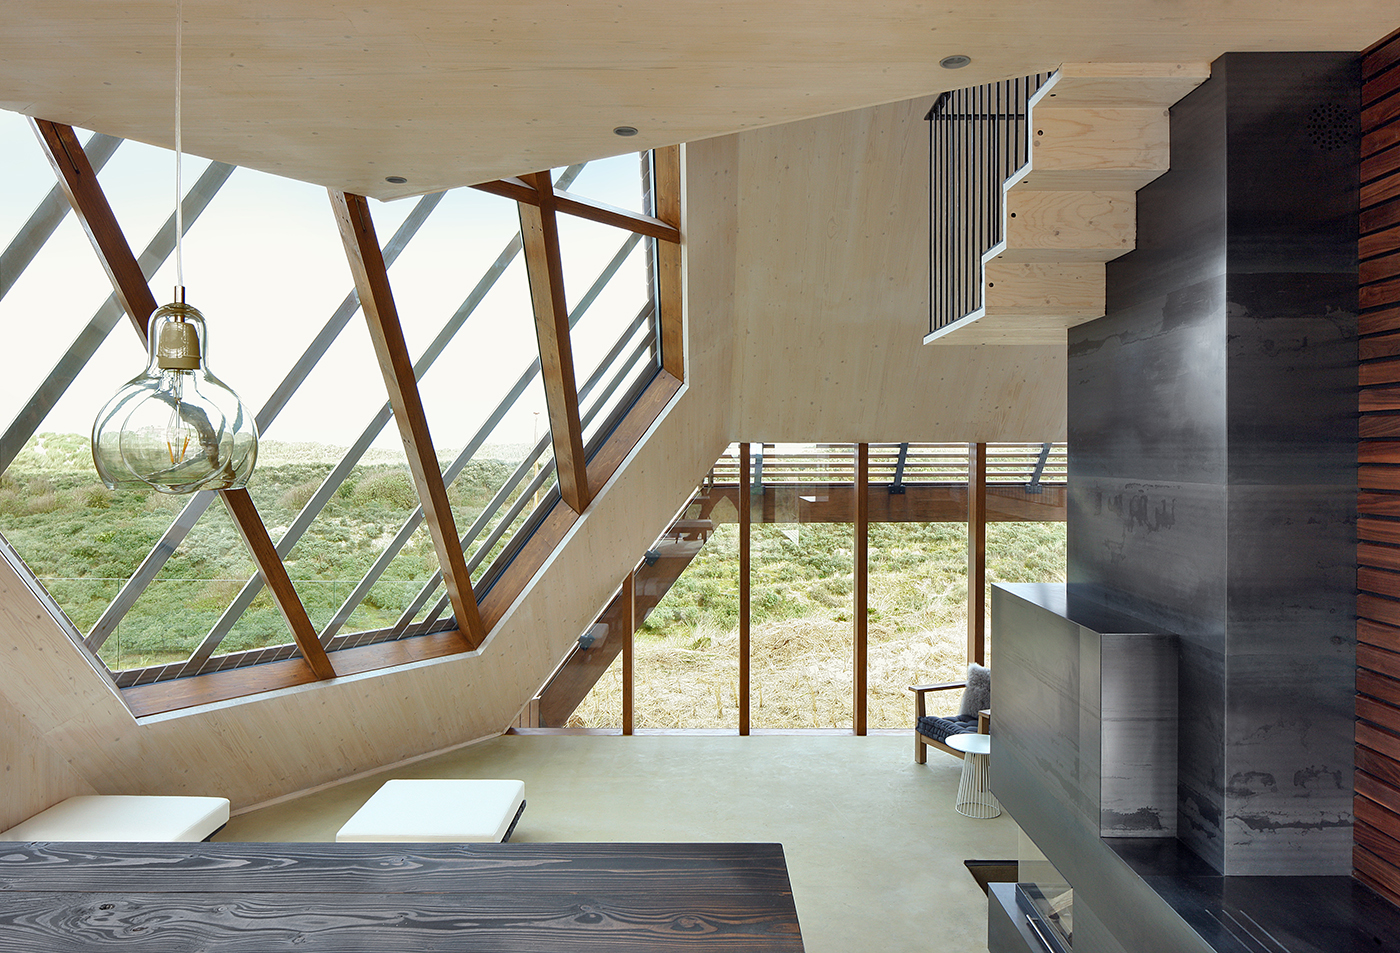 Dune House in Terschelling Island by Marc Koehler Architects